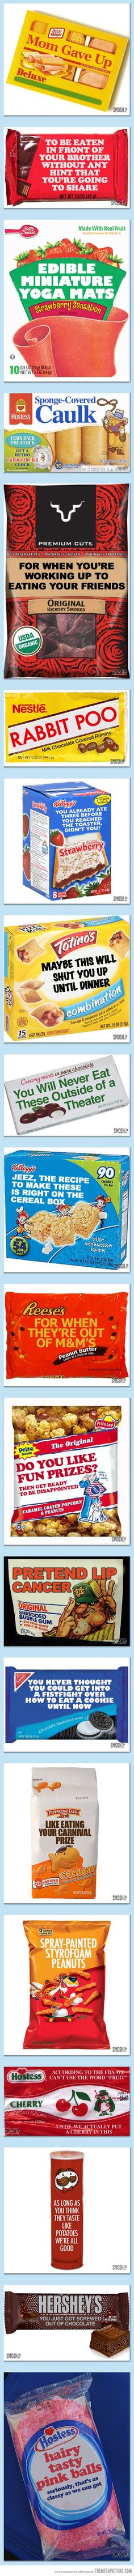 funny-famous-snacks-brands-logos.jpg (500×9630) - Click image to find more Humor Pinterest pins